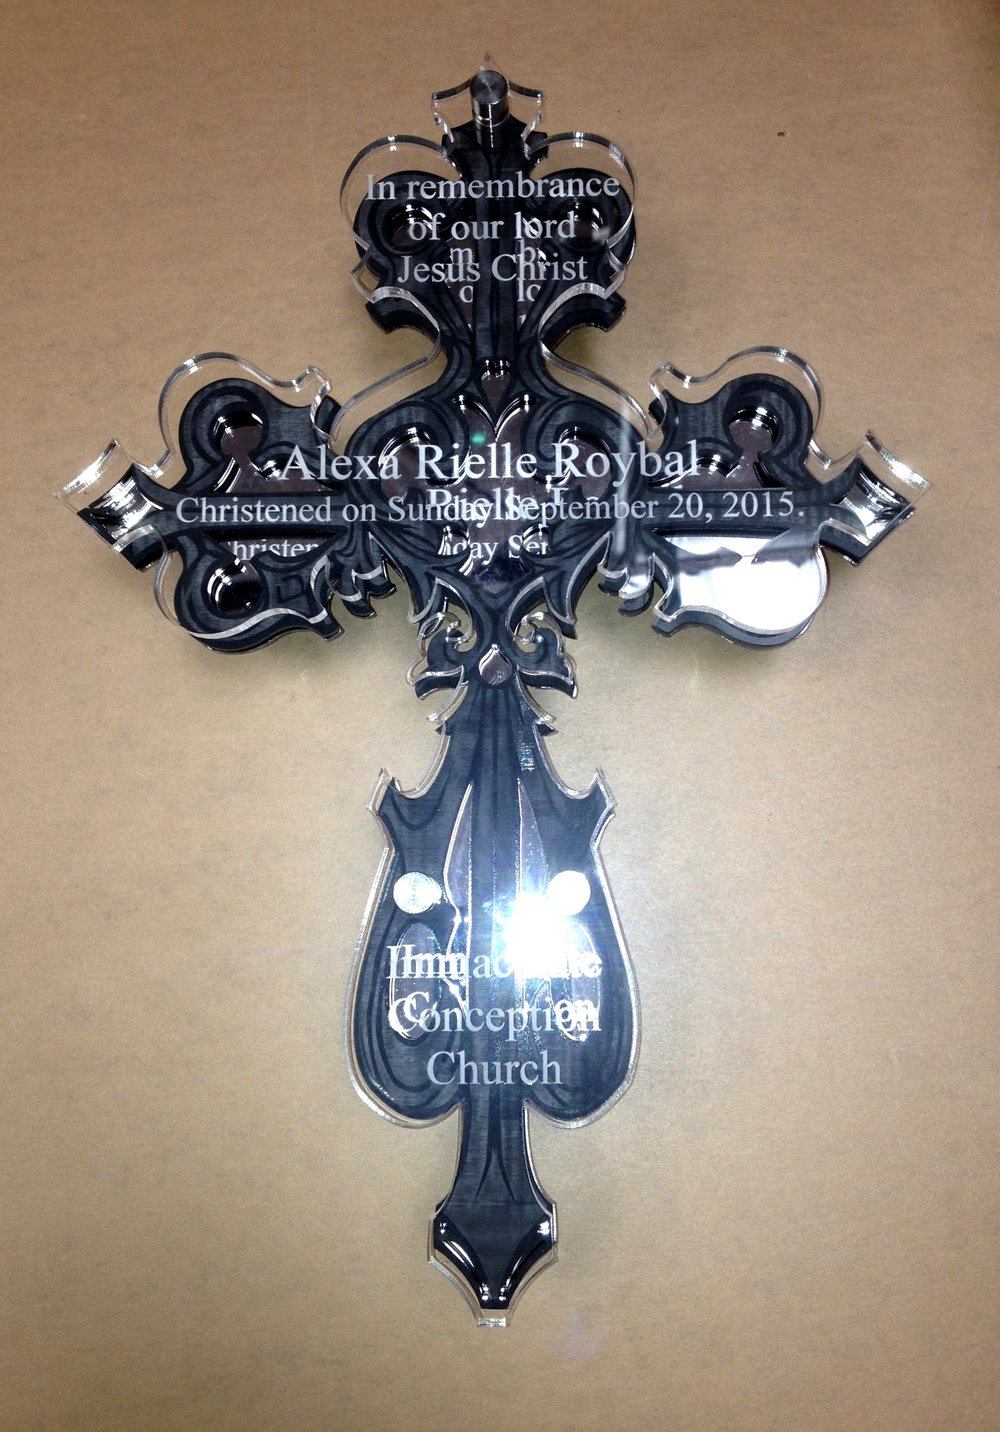 Memorial Events - Commemorative cross celebrates spiritual ceremony   Contact us for design assistance and  pricing information.